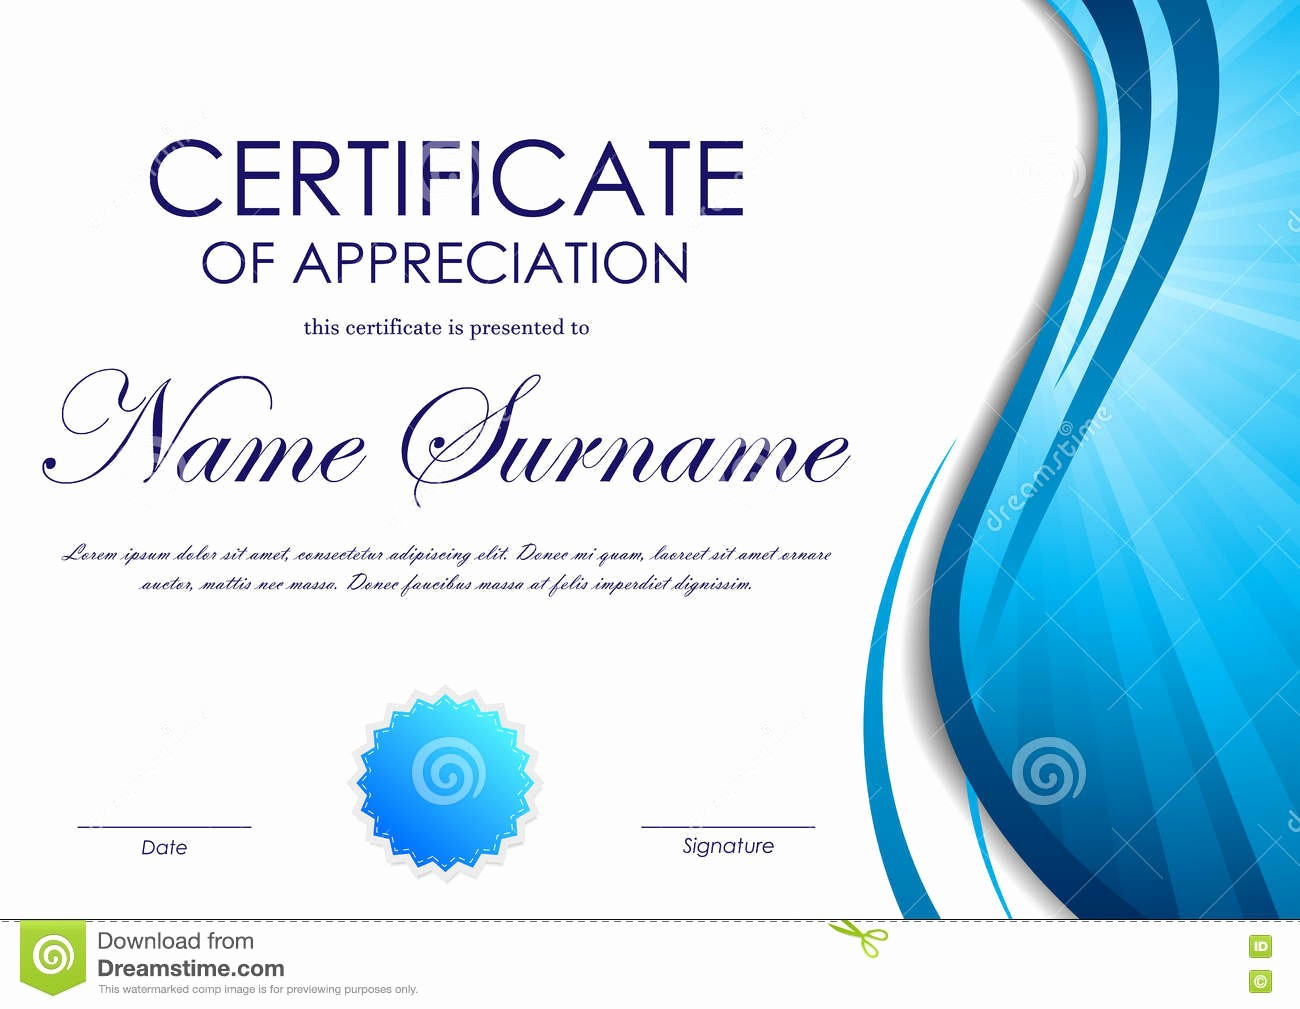 Certificate Background Design Free Download New Certificate Appreciation Template Stock Vector